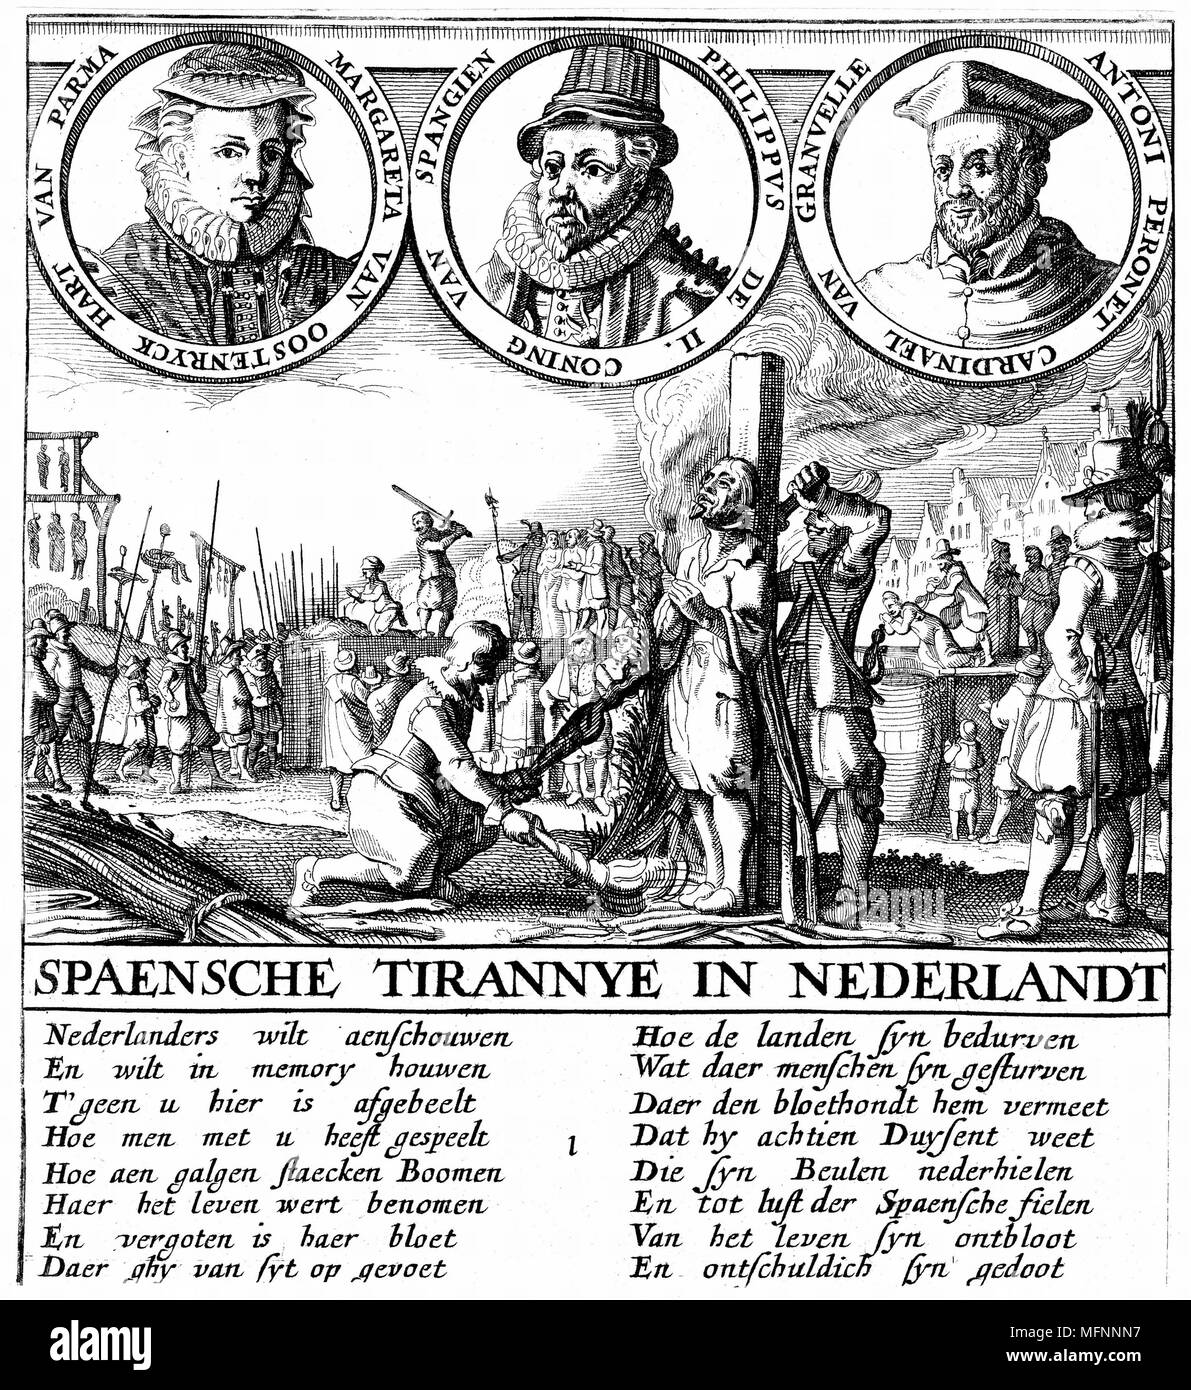 Spanish tyranny in Nertherlands. Portraits are Margaret of Parma, Spanish Regent in Netherlands (1559-67), Philip II of Spain, and Antoine Granvell, Spanish diplomat and prelate. Main picture, execution of Huguenots. Man in foreground being treated 'mercifully' by being garotted before flames reach him. Copperplate engraving - Stock Image